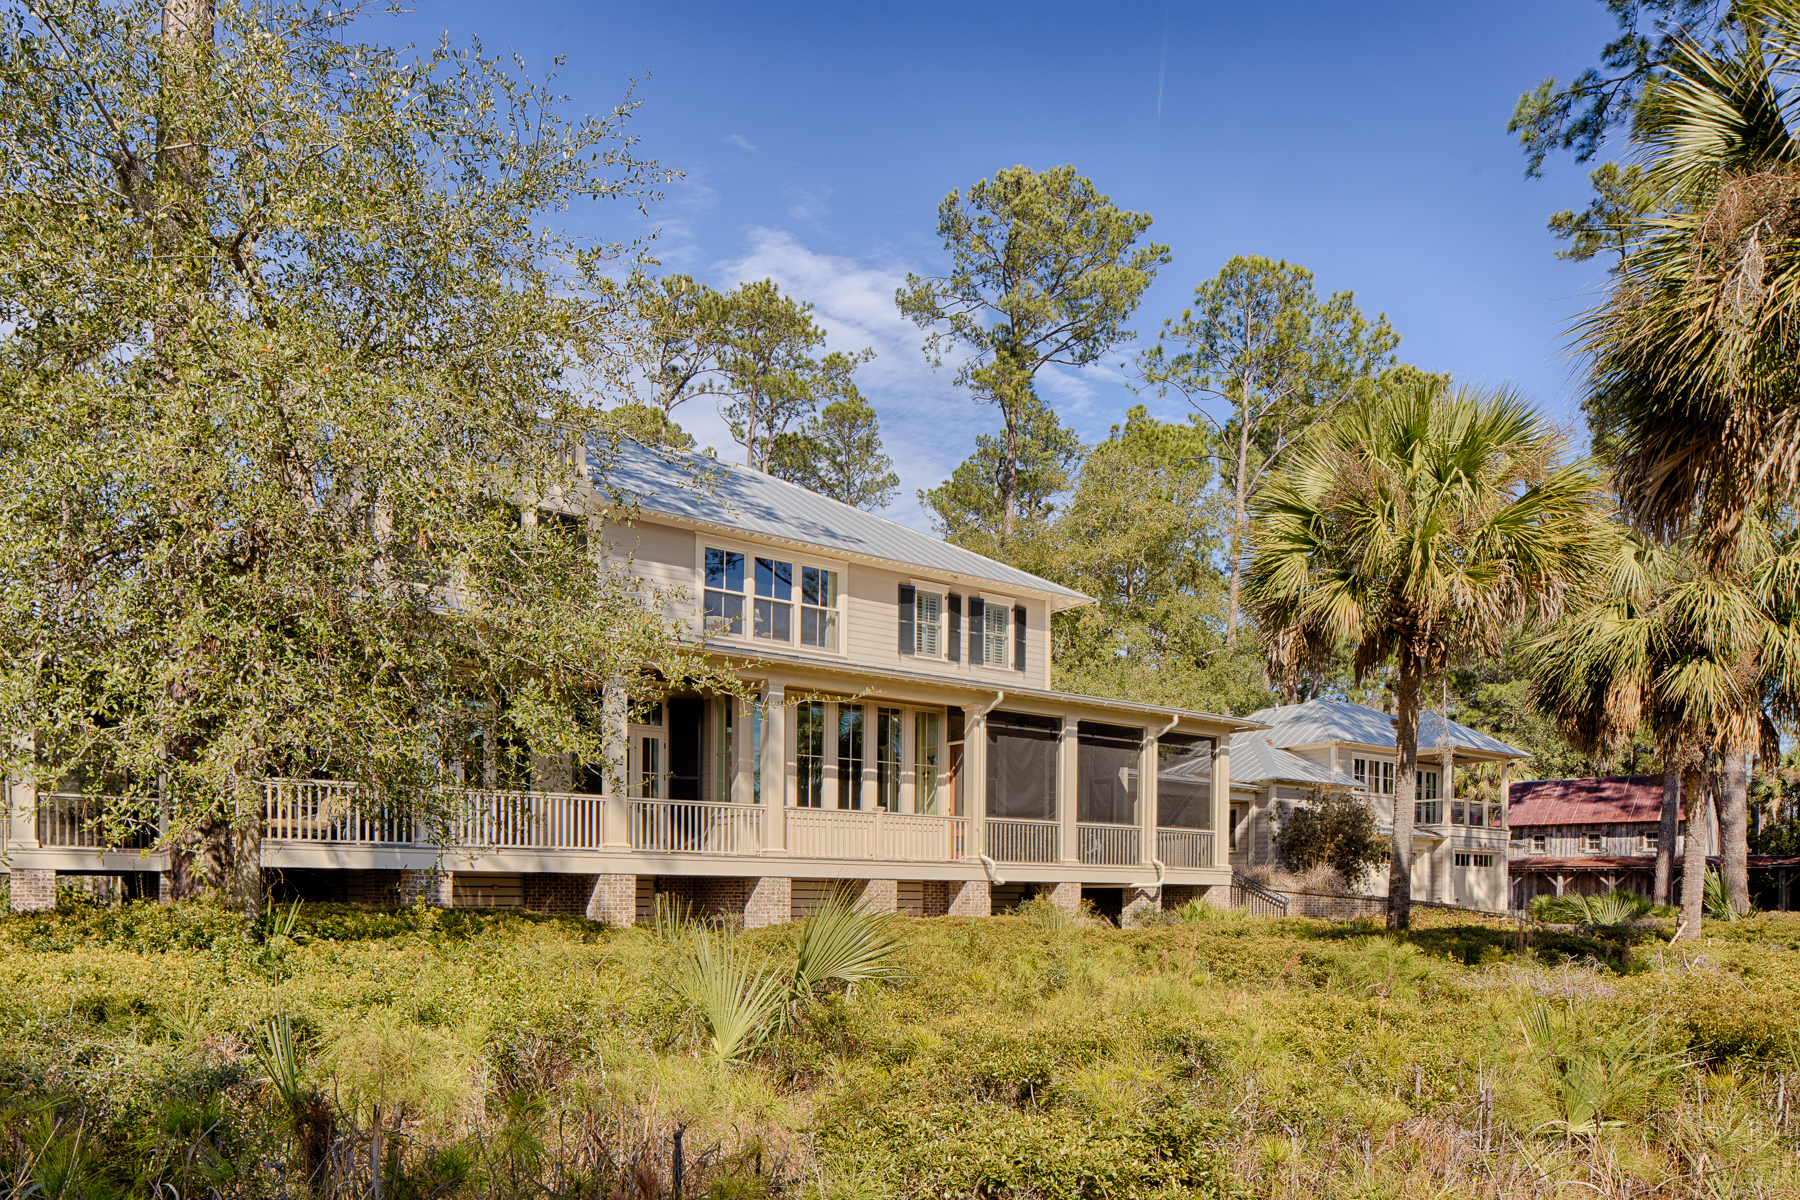 Additional photo for property listing at 945 Mount Pelia Road 945 Mt. Pelia Bluffton, South Carolina 29910 United States